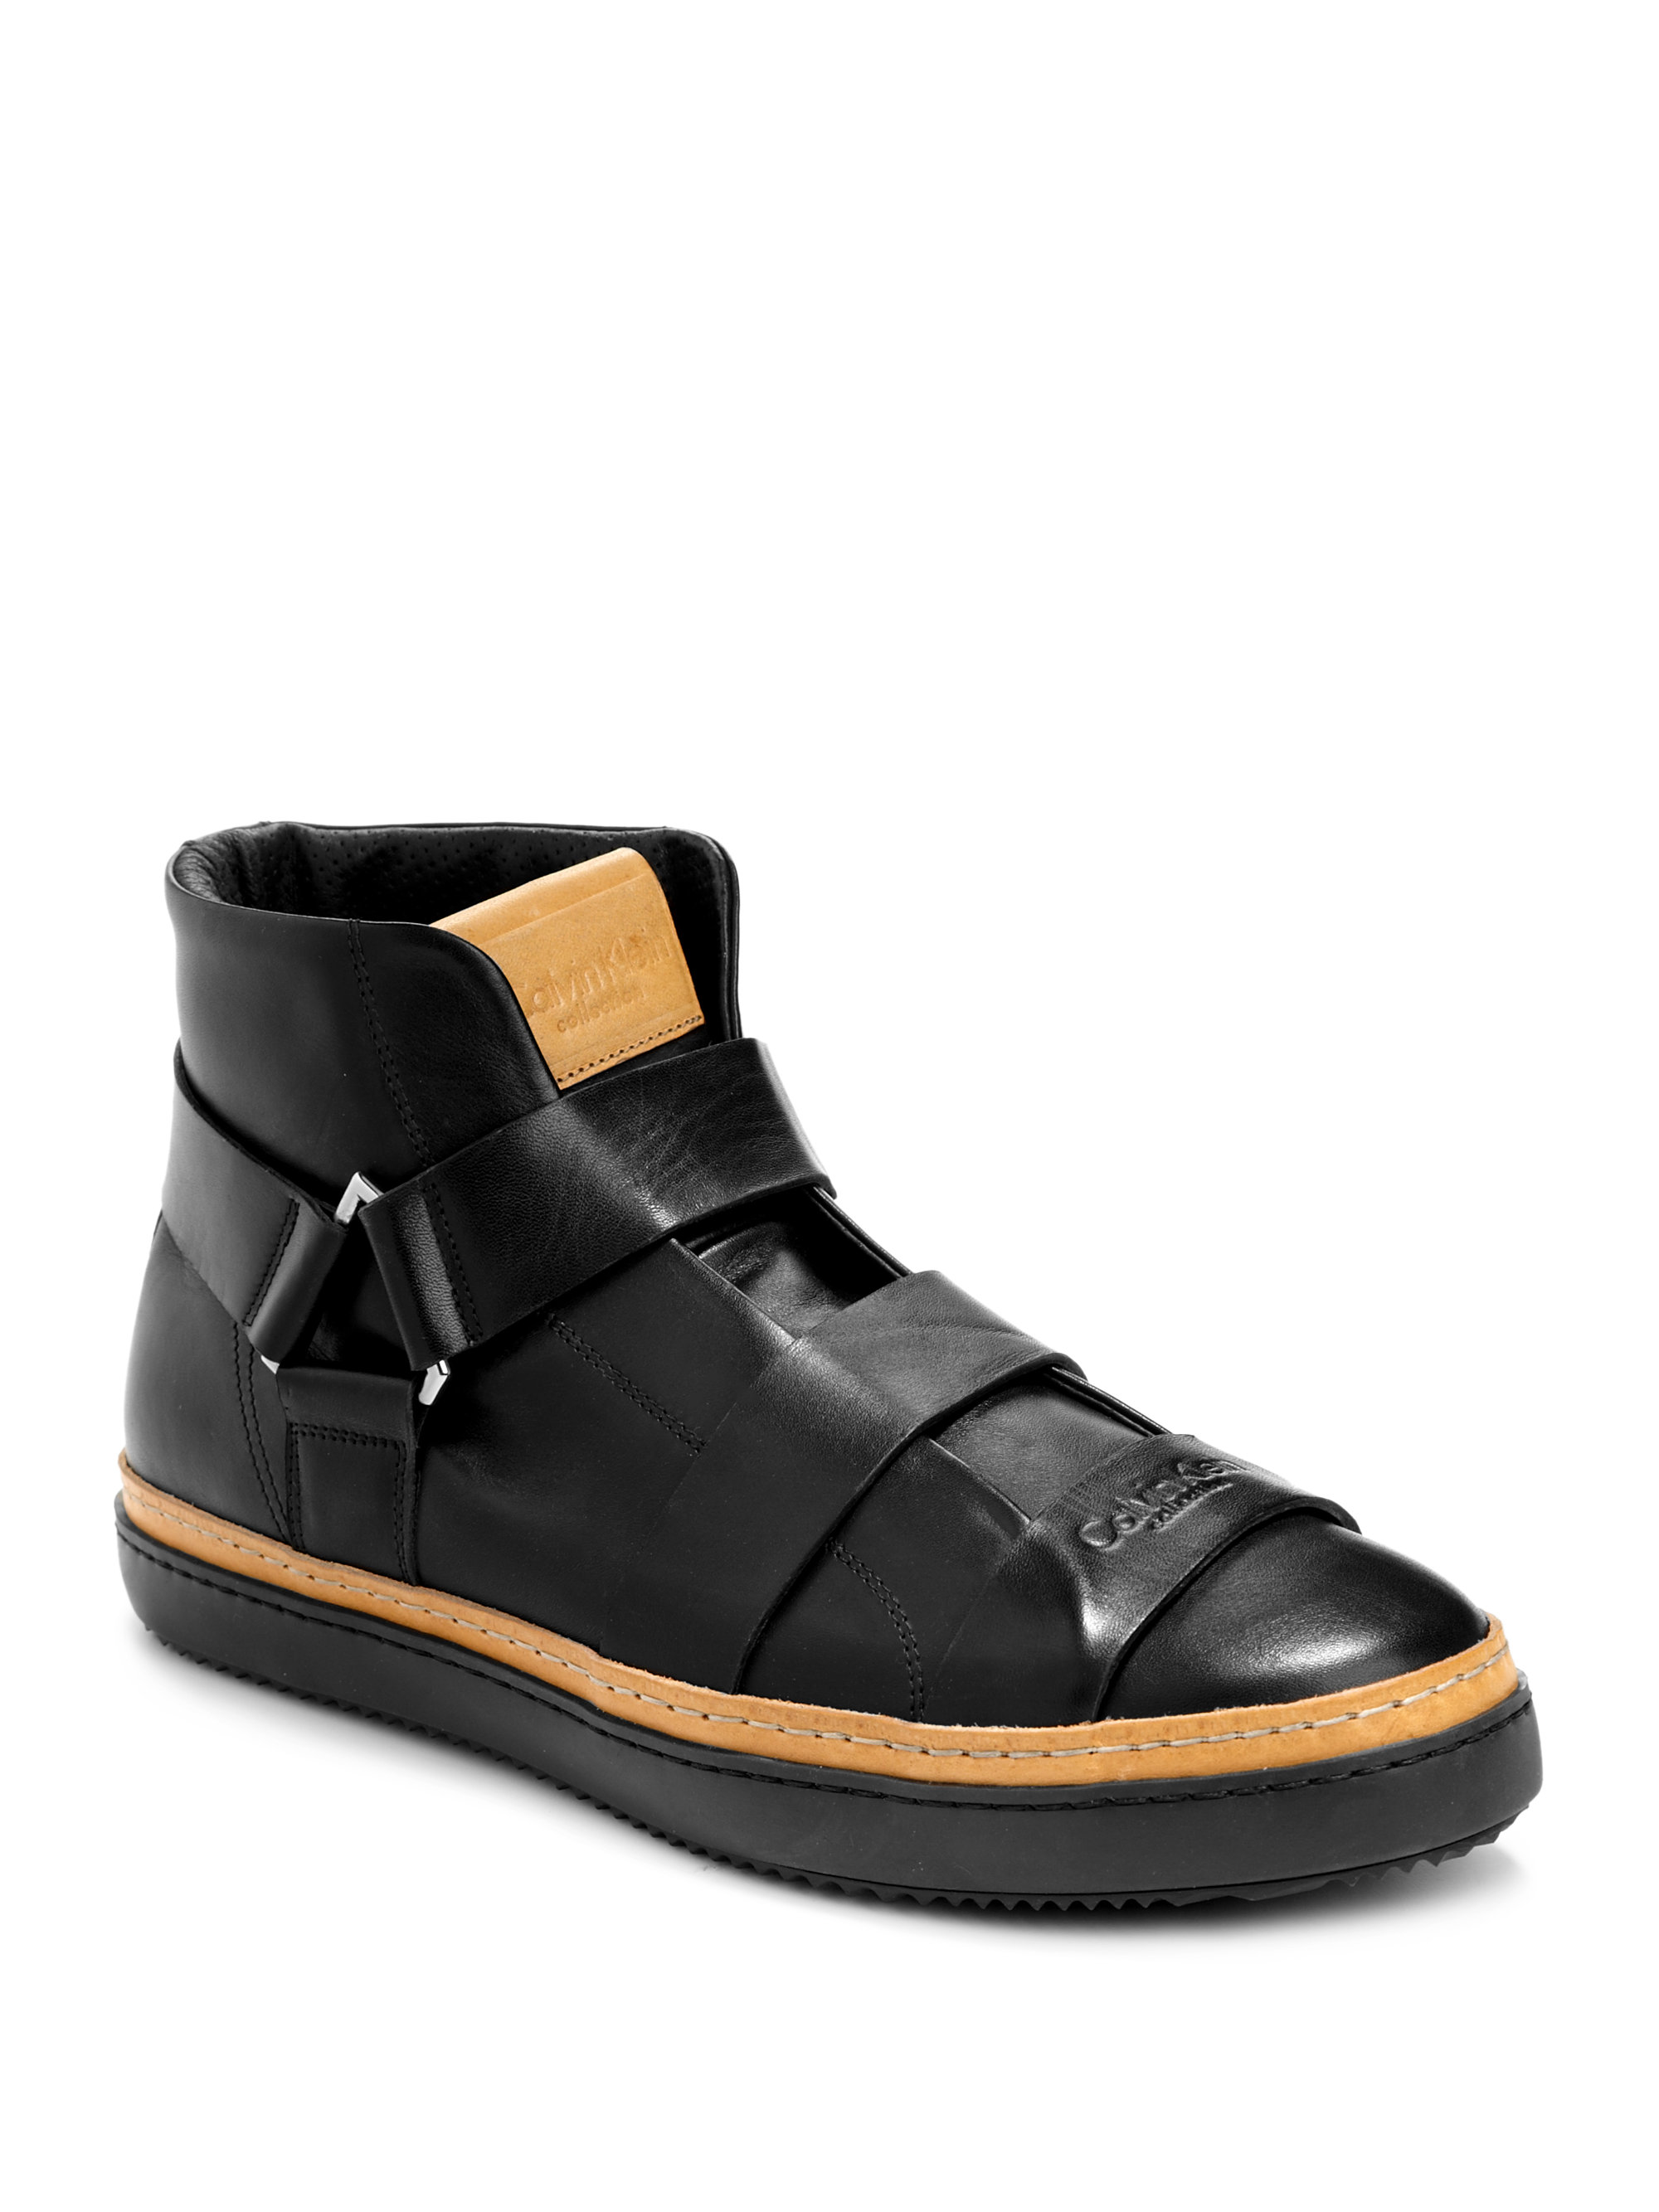 calvin klein high top multistrap leather sneakers in black for men lyst. Black Bedroom Furniture Sets. Home Design Ideas